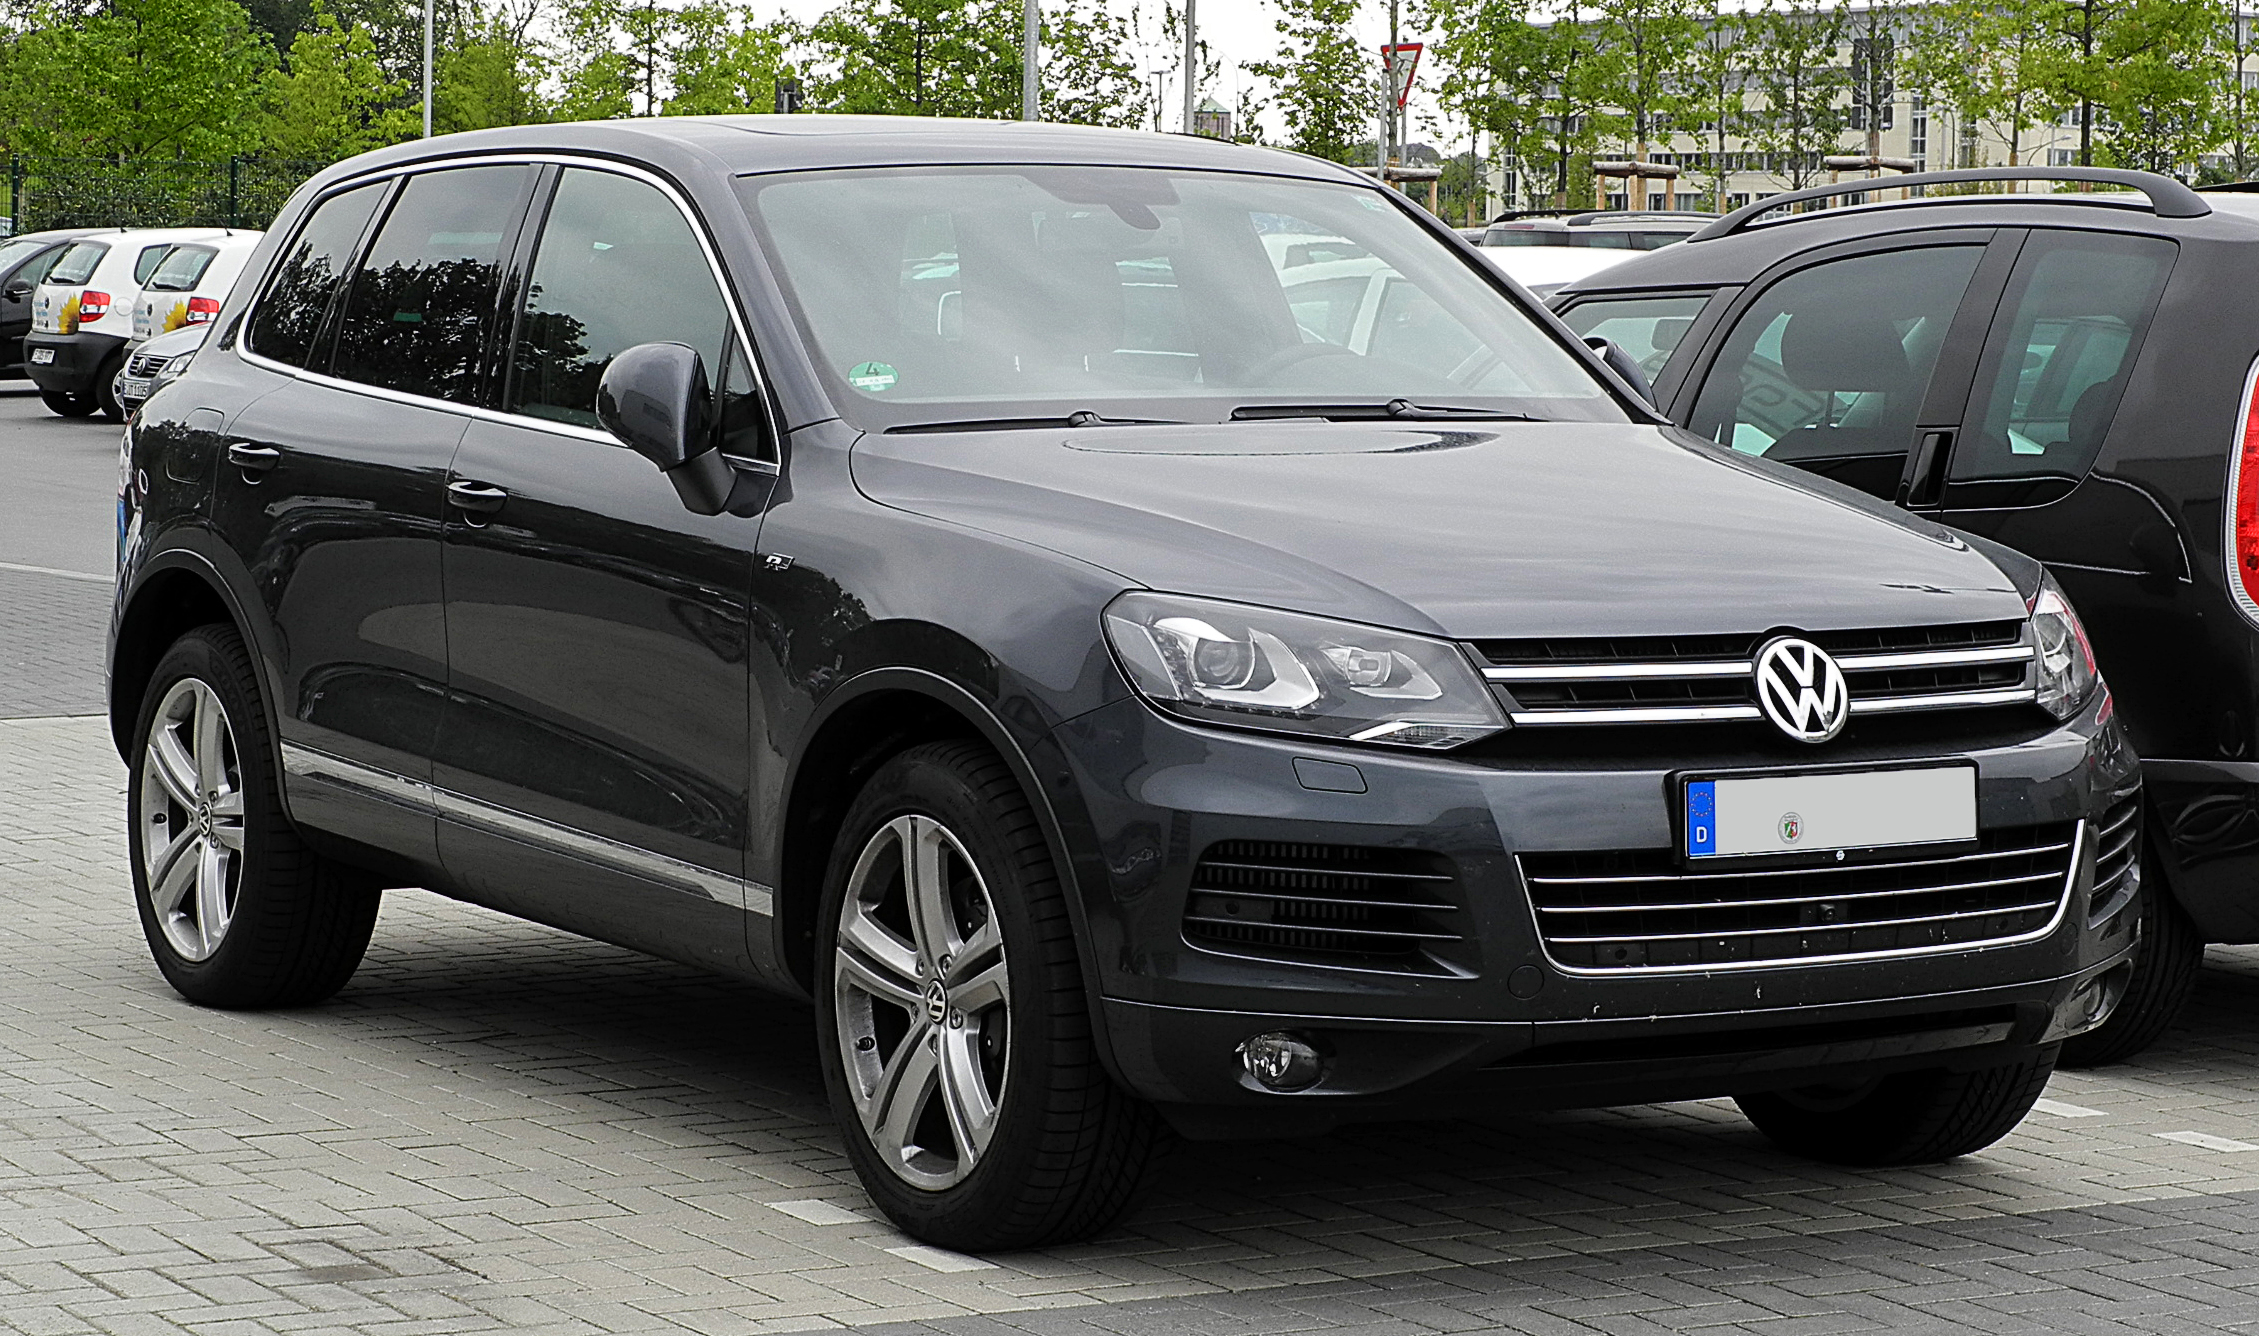 file vw touareg r line ii frontansicht 3 juli 2011 wikimedia commons. Black Bedroom Furniture Sets. Home Design Ideas